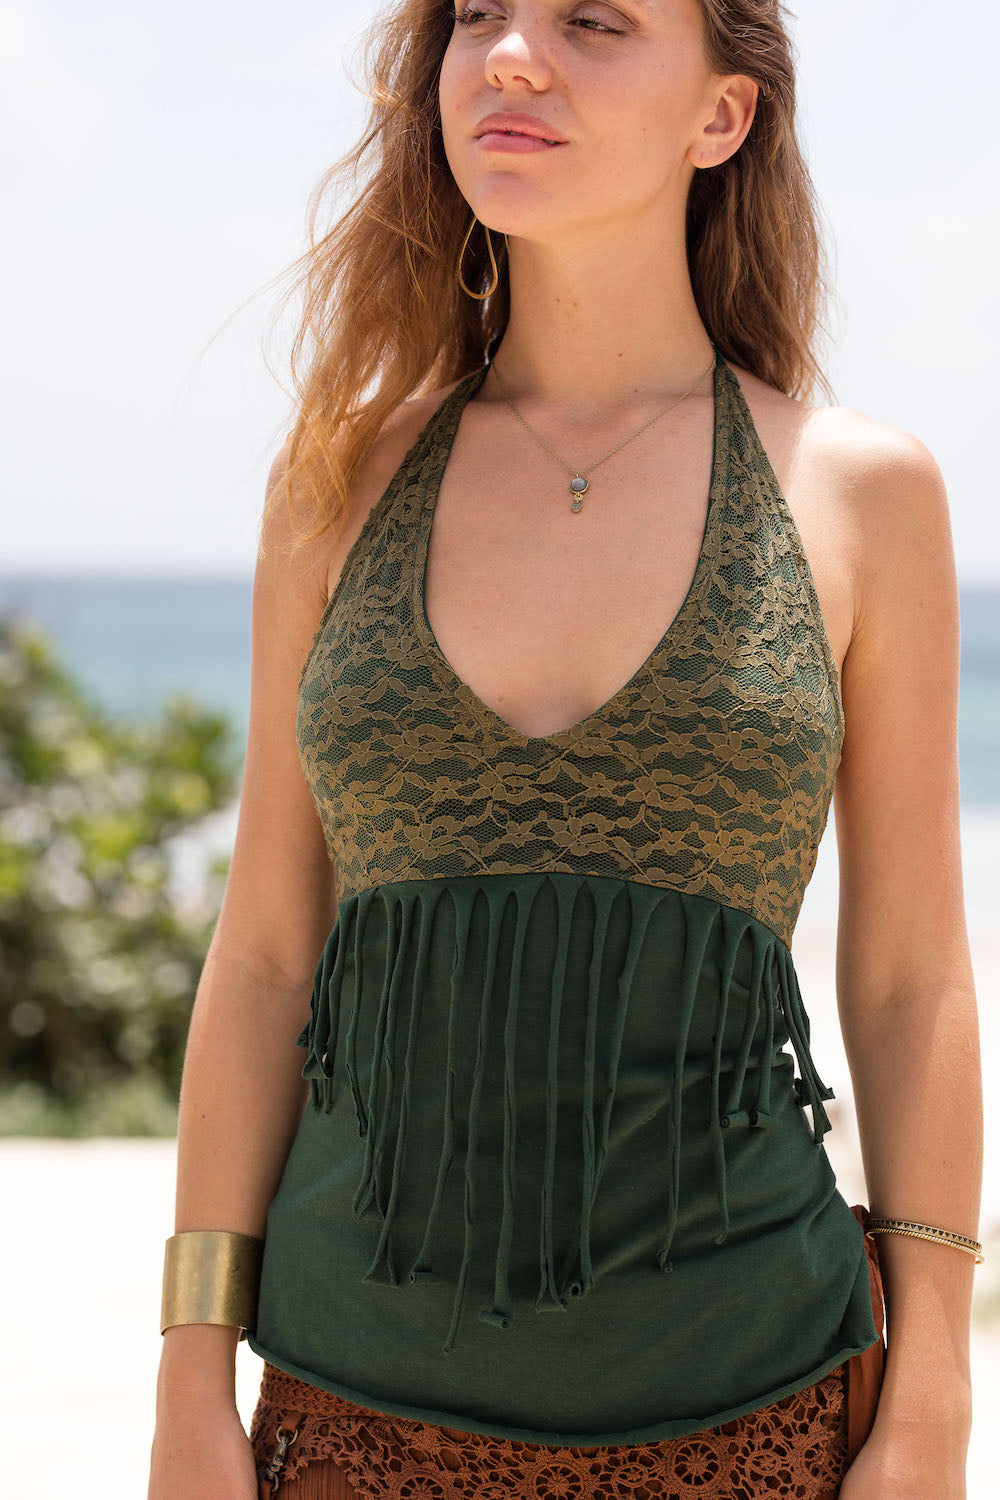 FREE SPIRIT TOP in GREEN